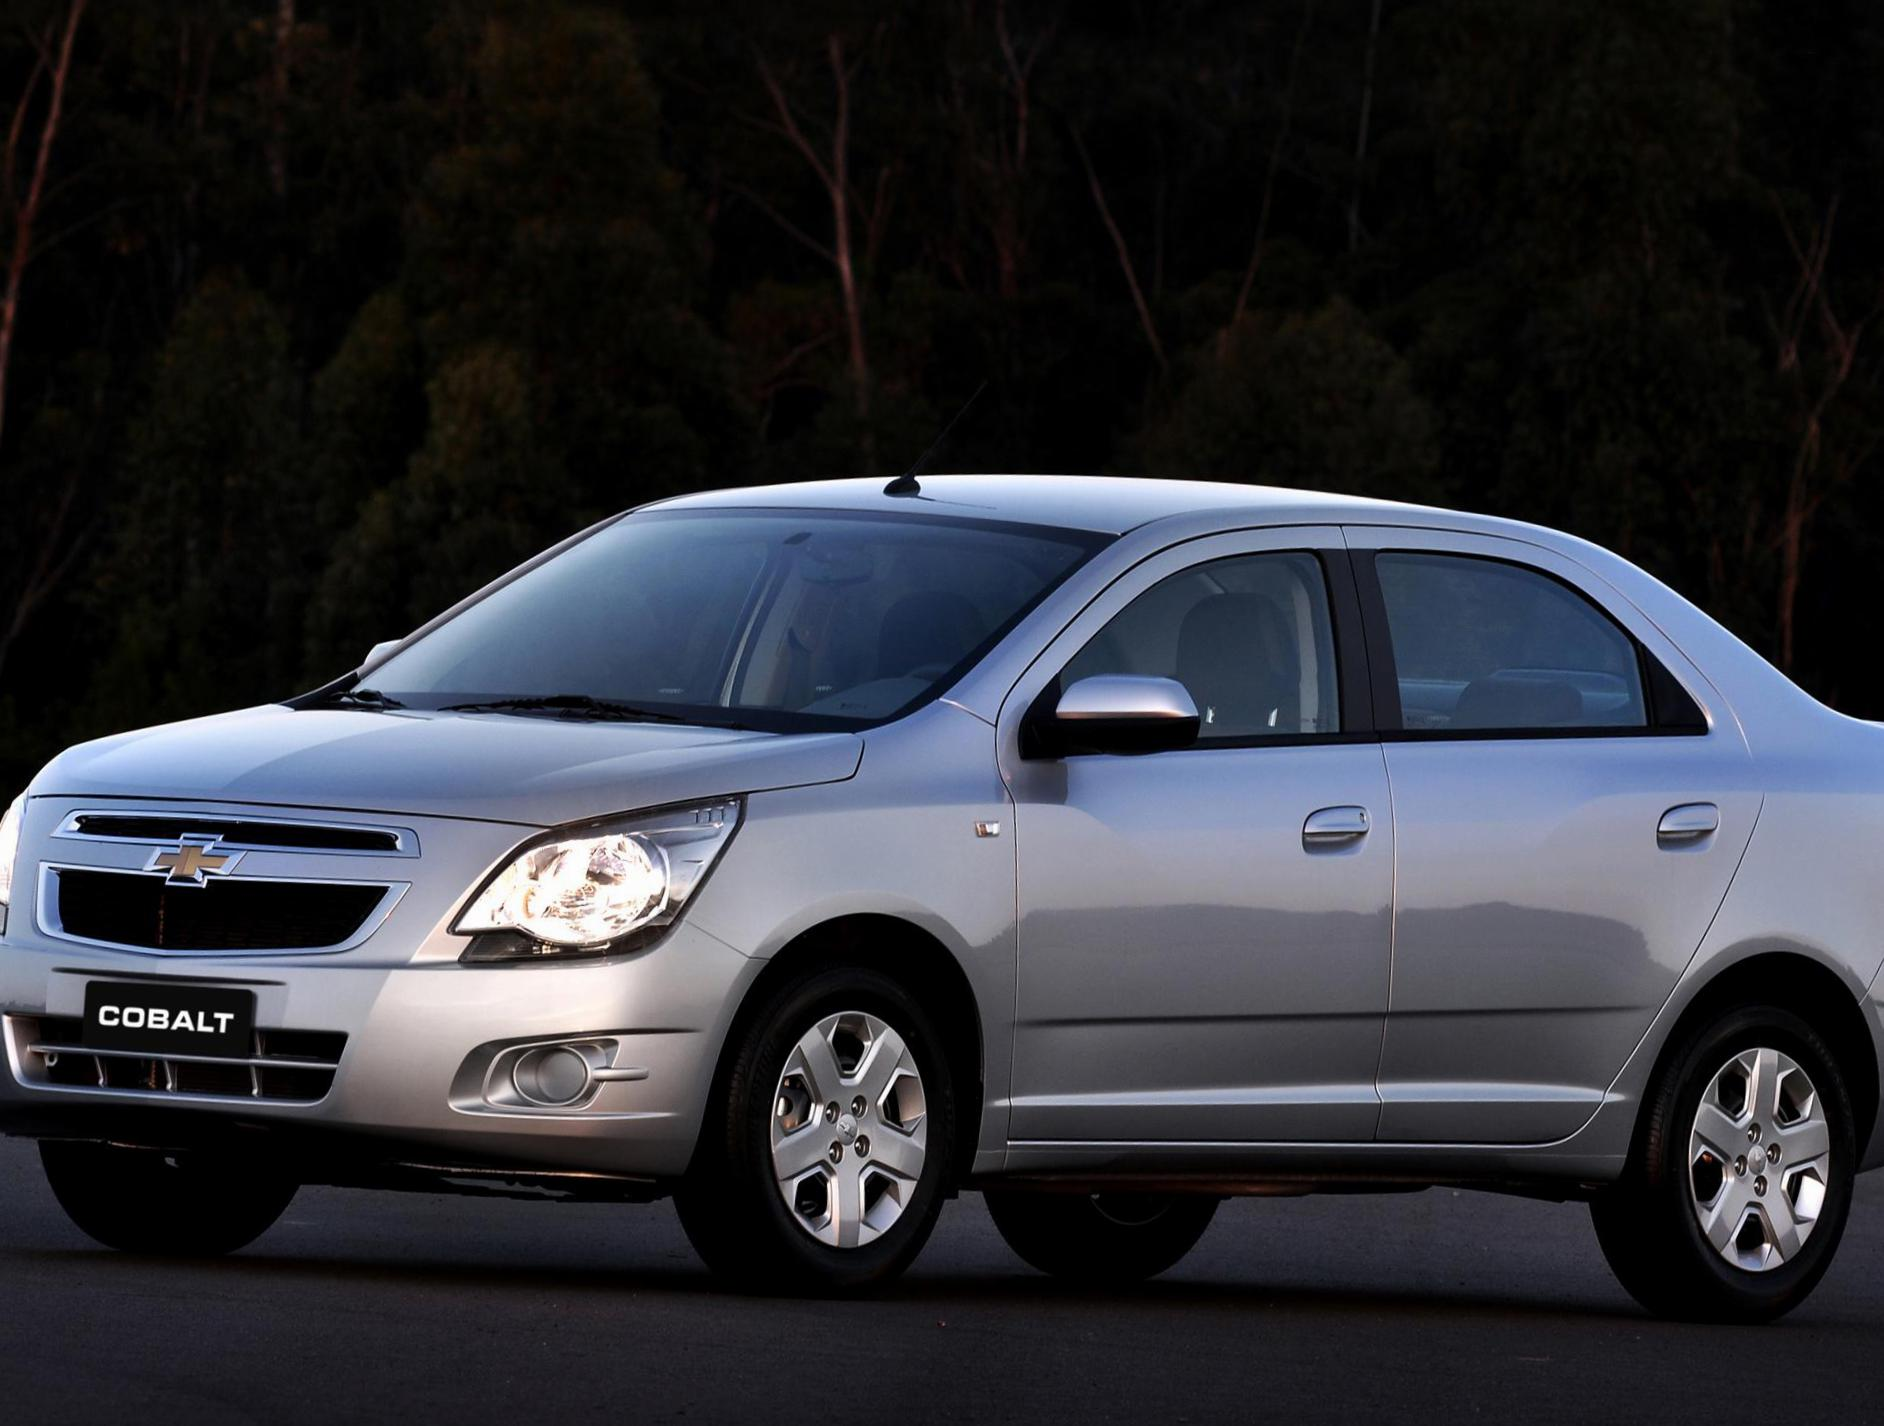 Chevrolet Cobalt sale sedan